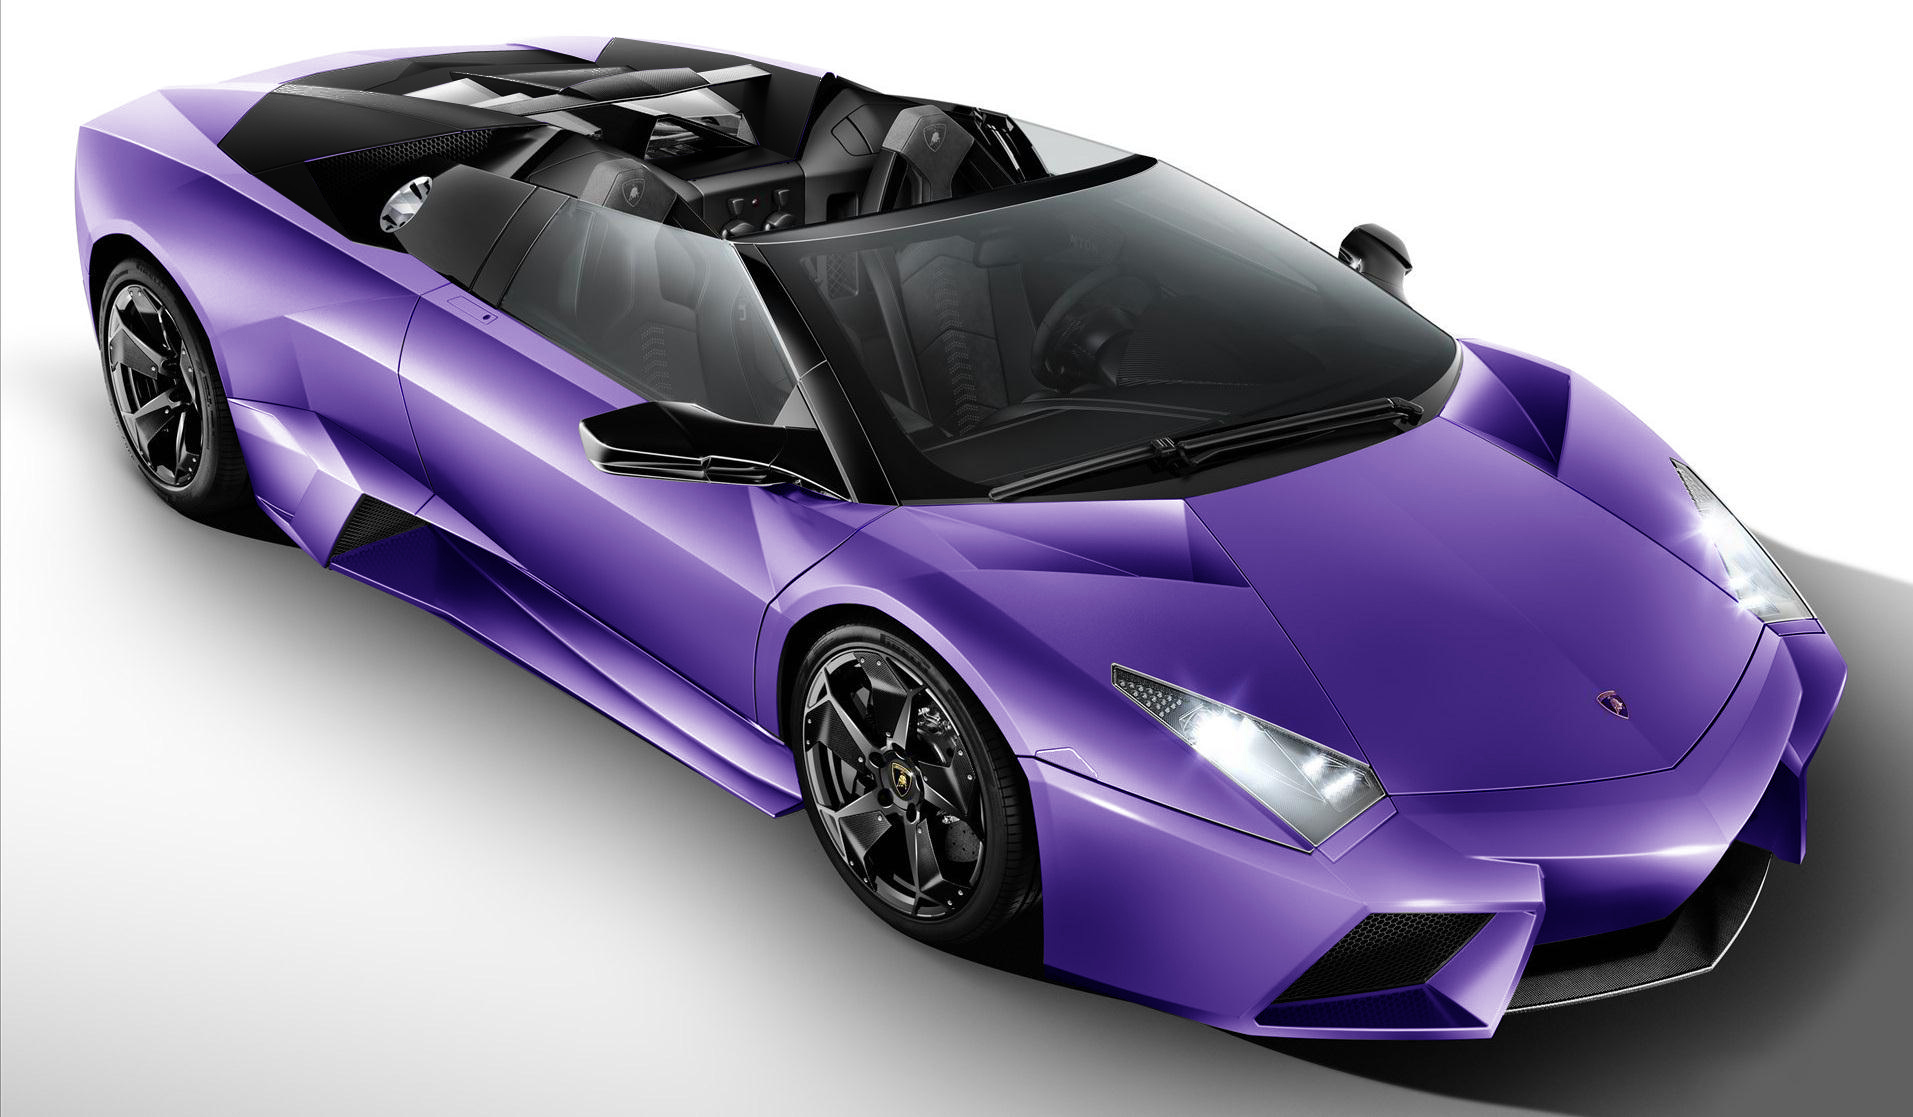 Purple Lamborghini High Quality Wallpapers For Iphone